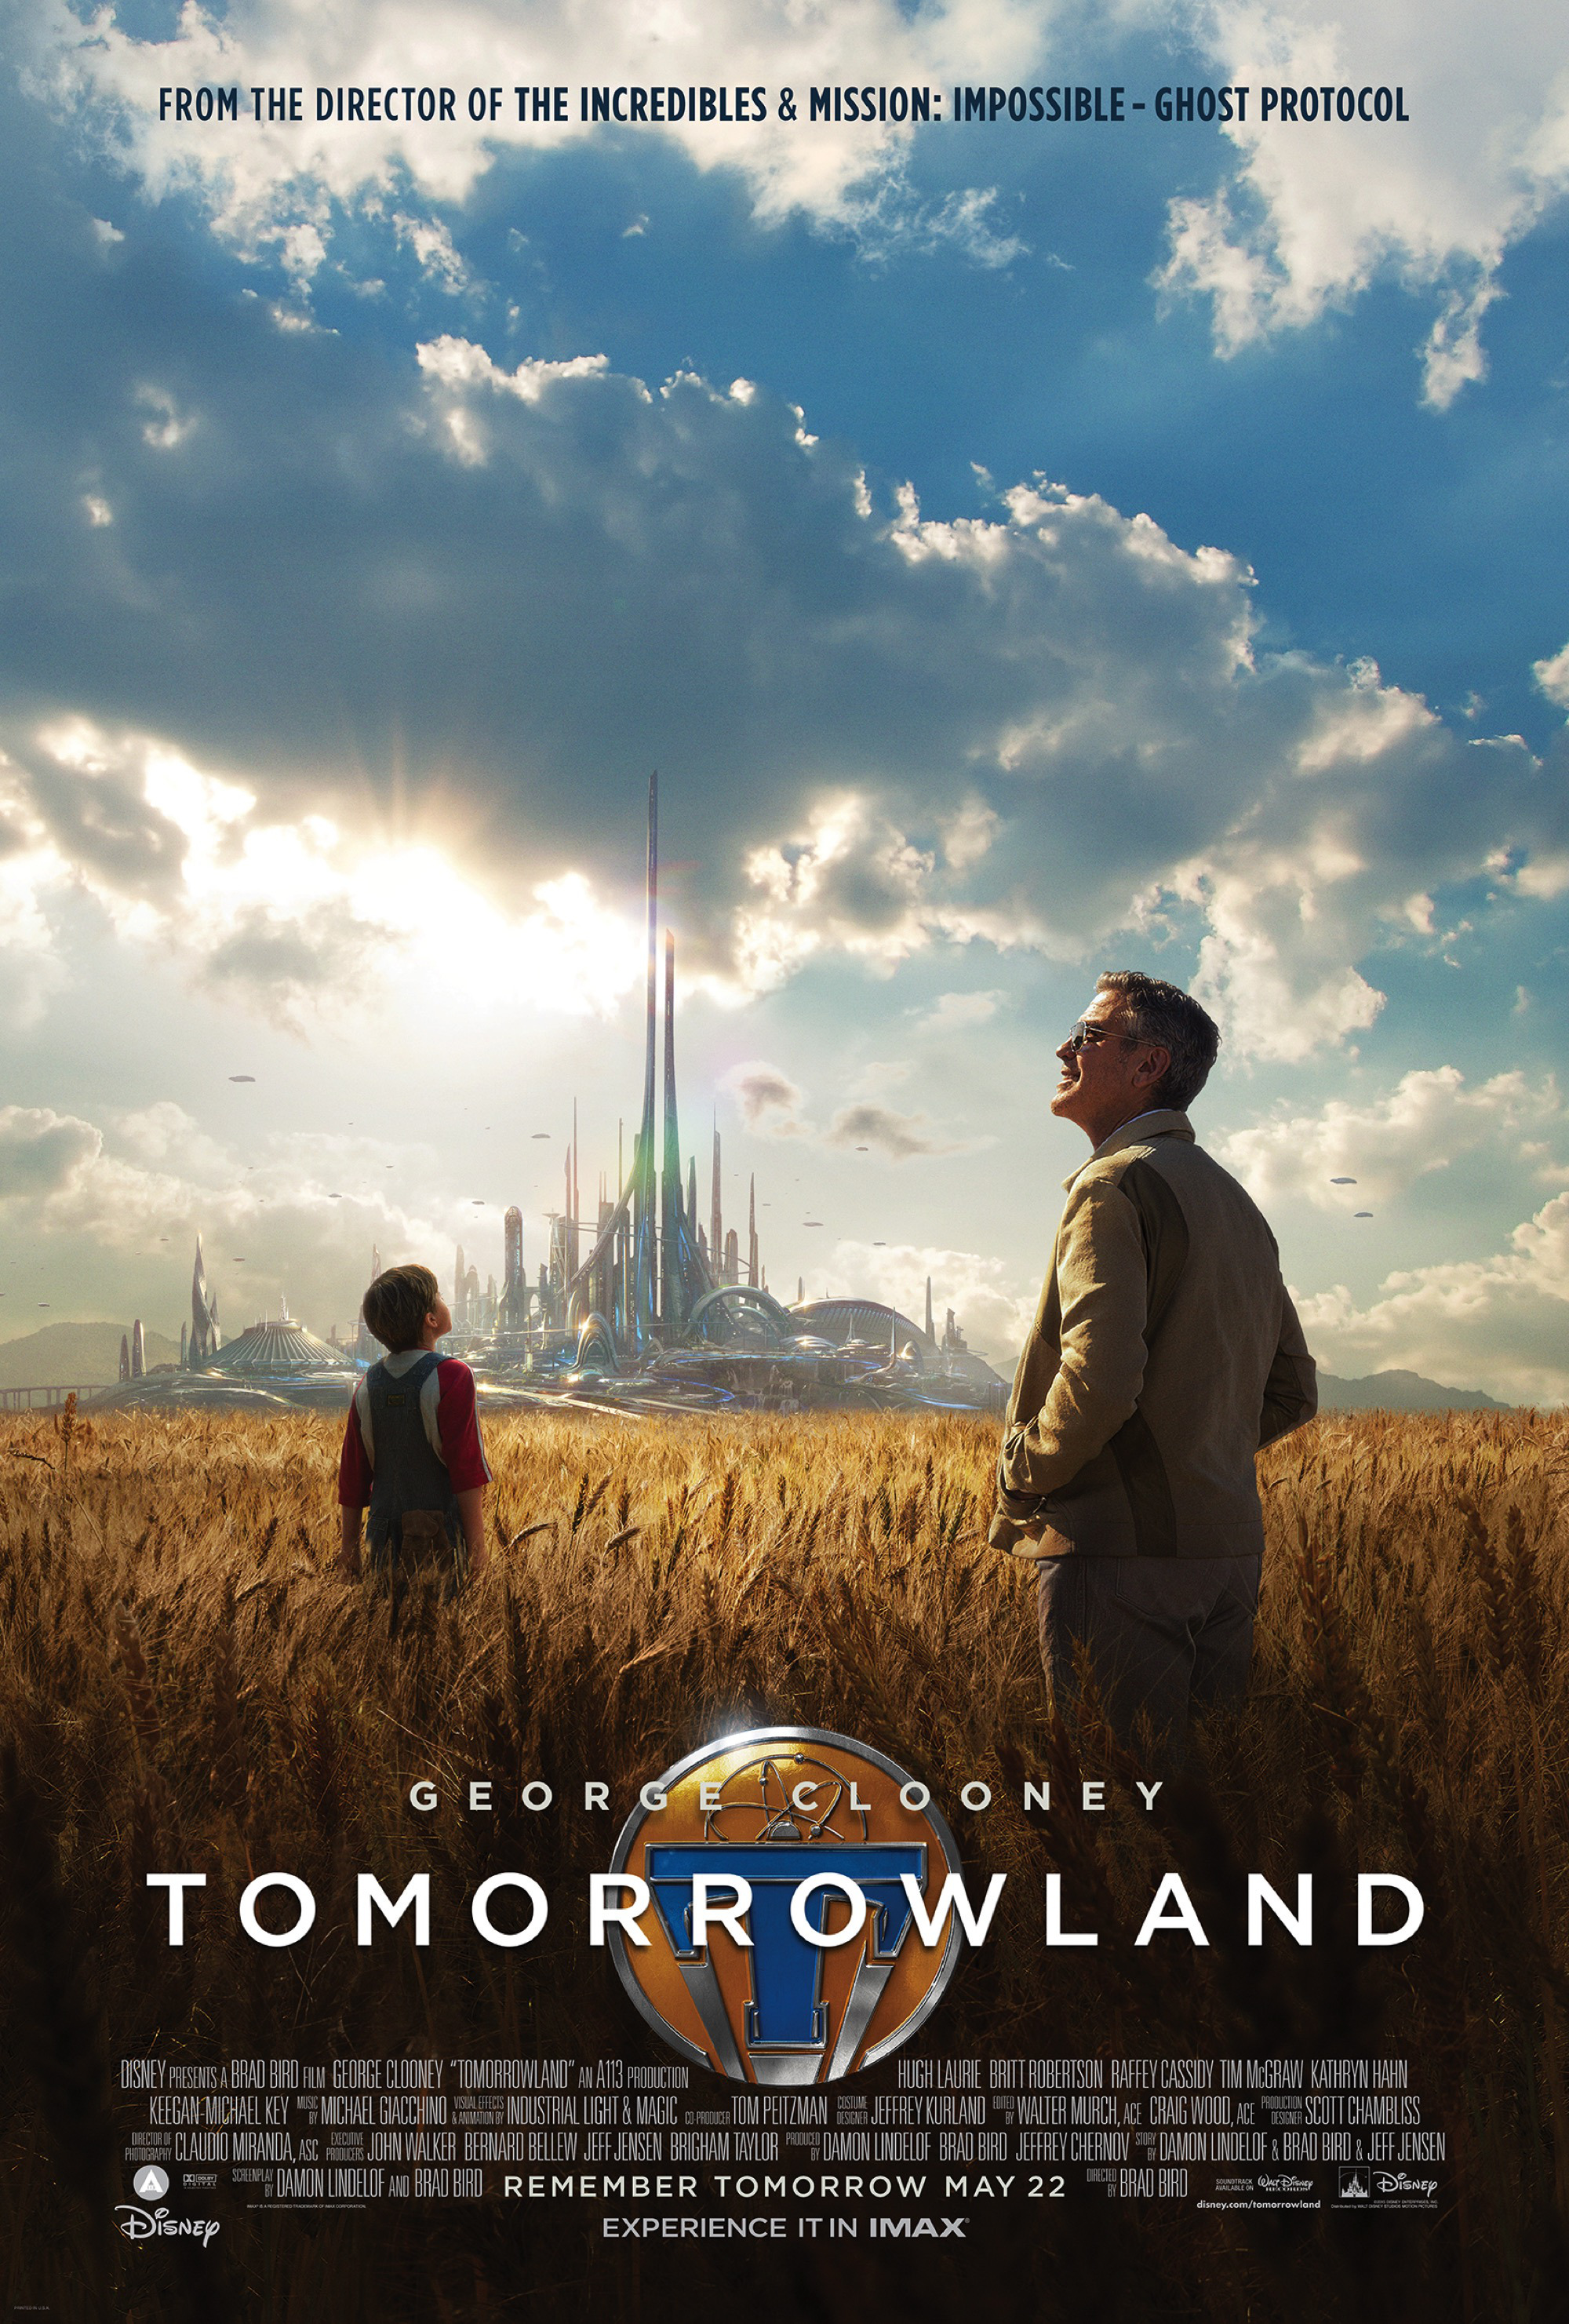 George Clooney Tomorrowland movie Poster